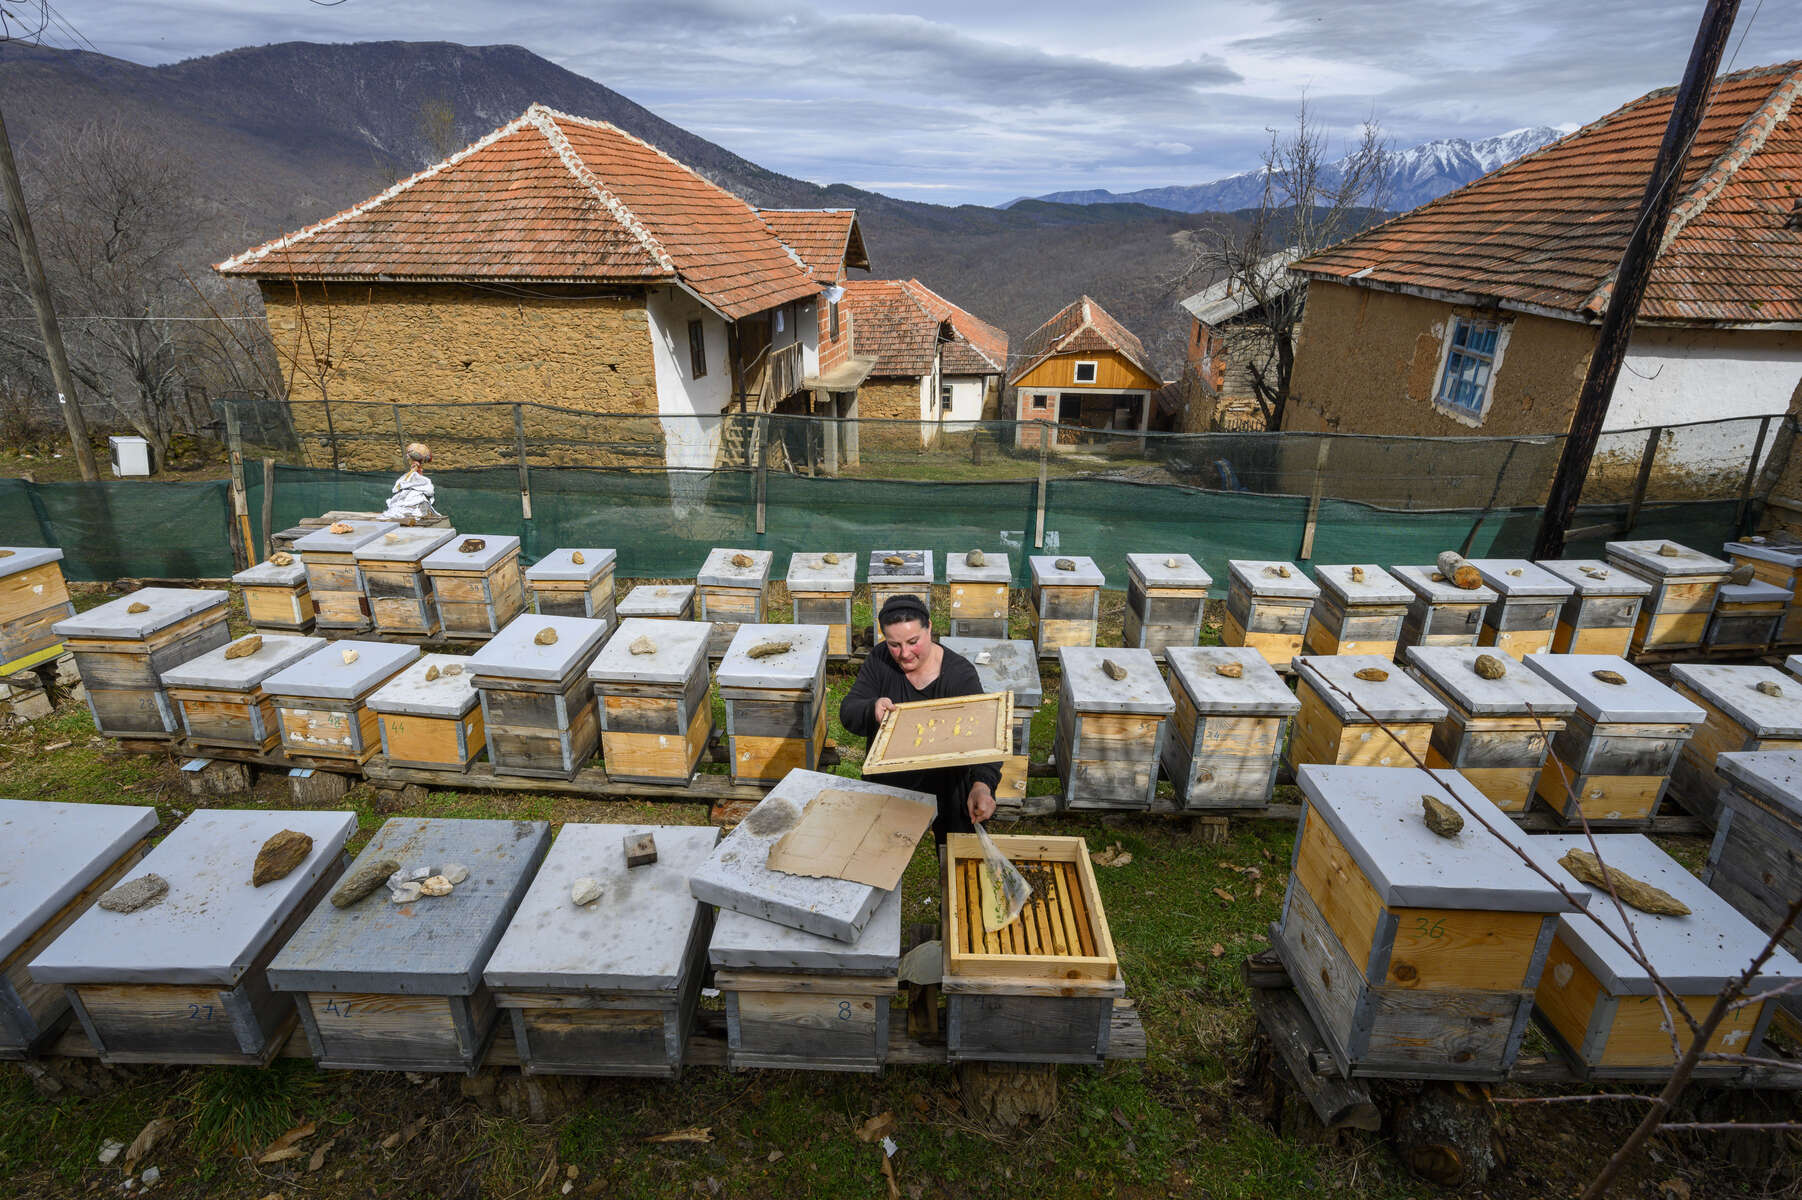 March 6, 2020; Beekeeper Cana Djukovska checks the bees in one of the hives in Zagrad, North Macedonia. Cana has been a beekeeper for 5 years and has 60 beehives. MBA students from Notre Dame traveled to the region to study agricultural businesses as part of their Business on the Frontlines course which examines the impact of business in societies affected by extreme poverty and conflict. (Photo by Barbara Johnston/University of Notre Dame)